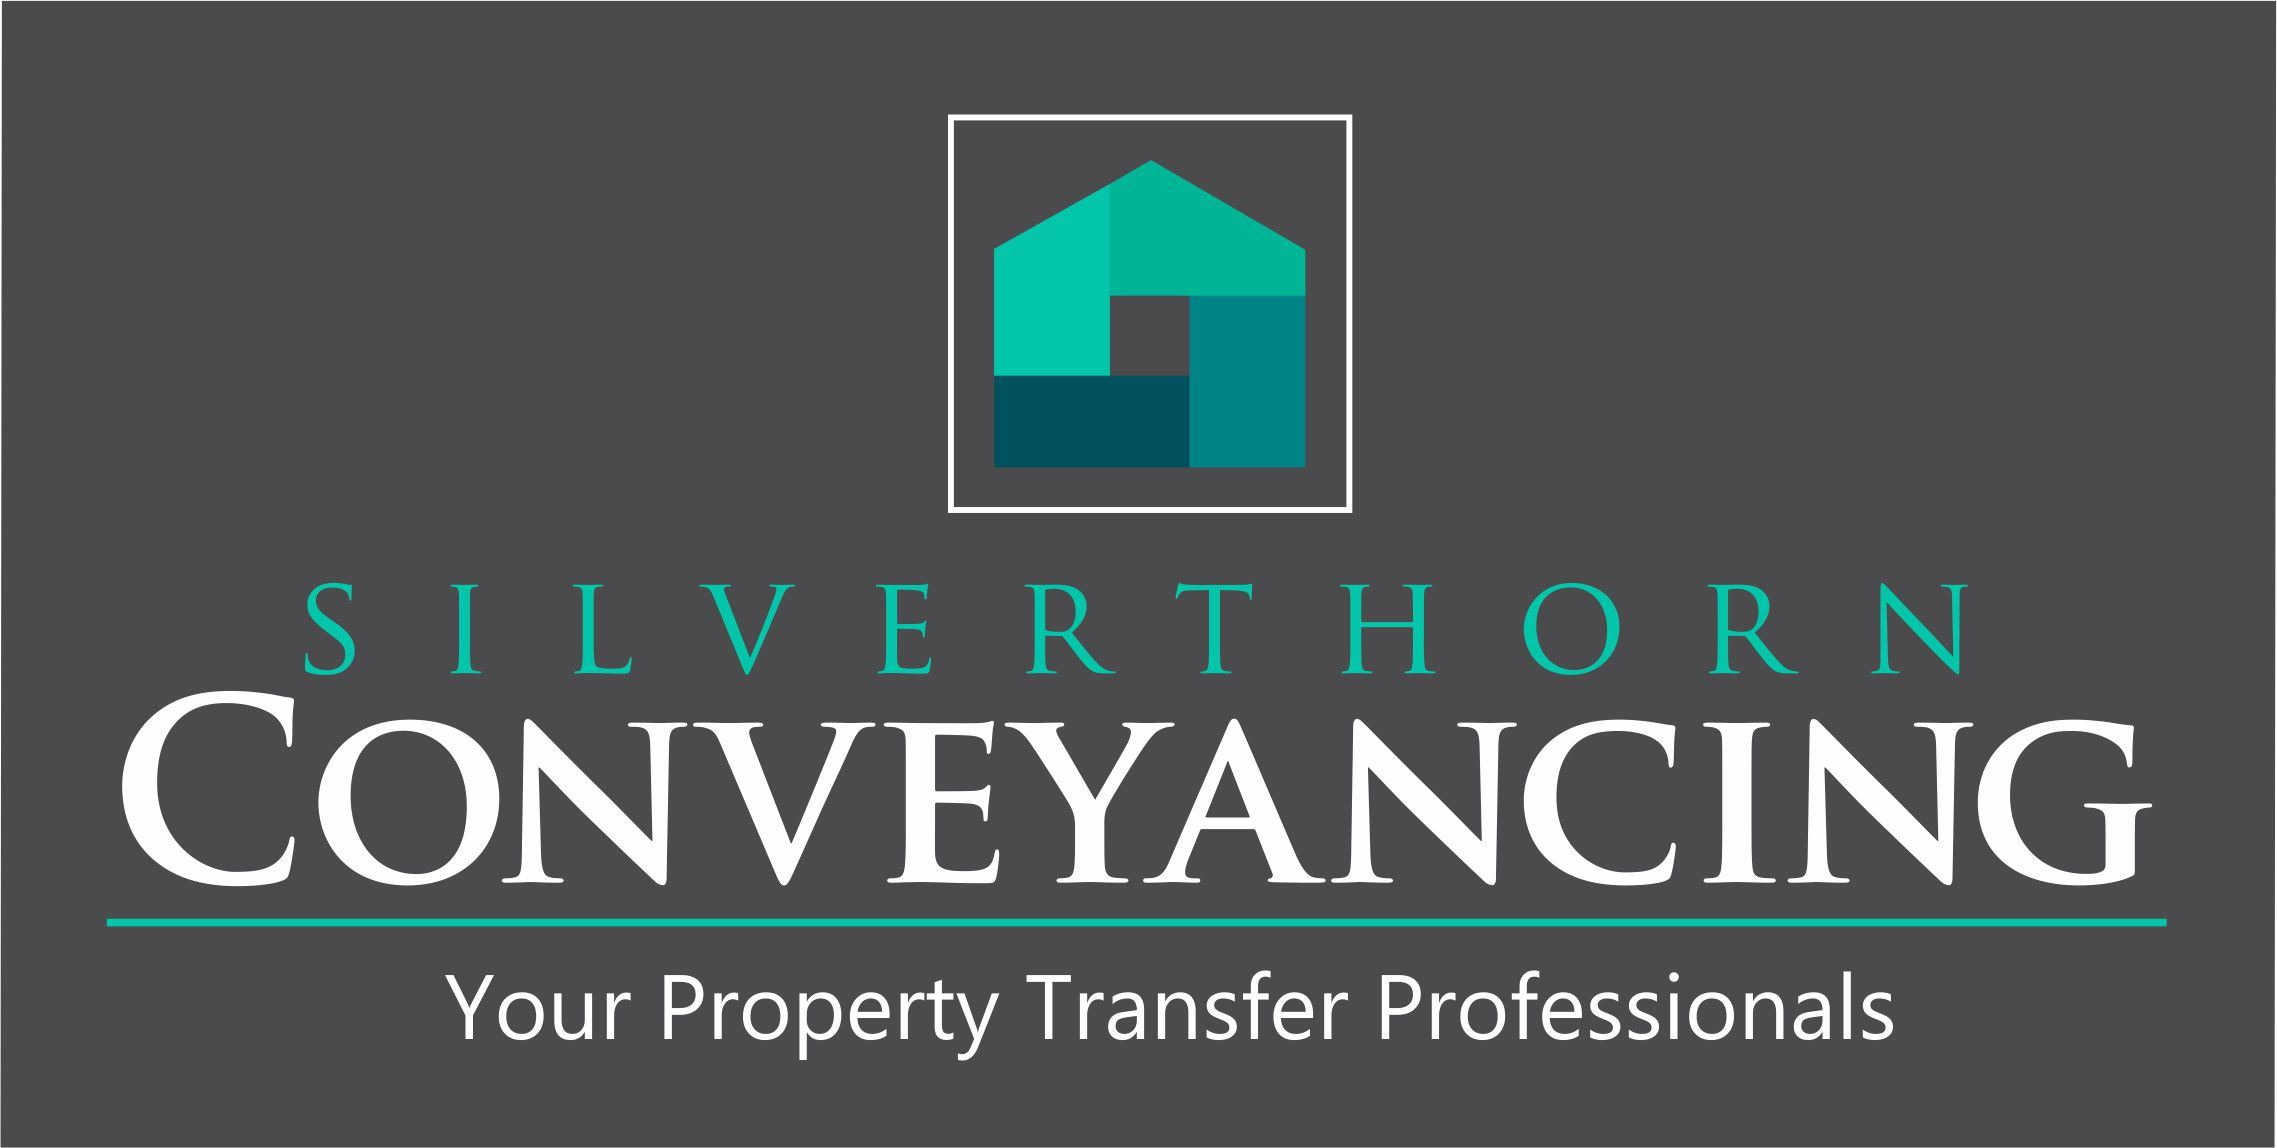 Silverthorn Conveyancing